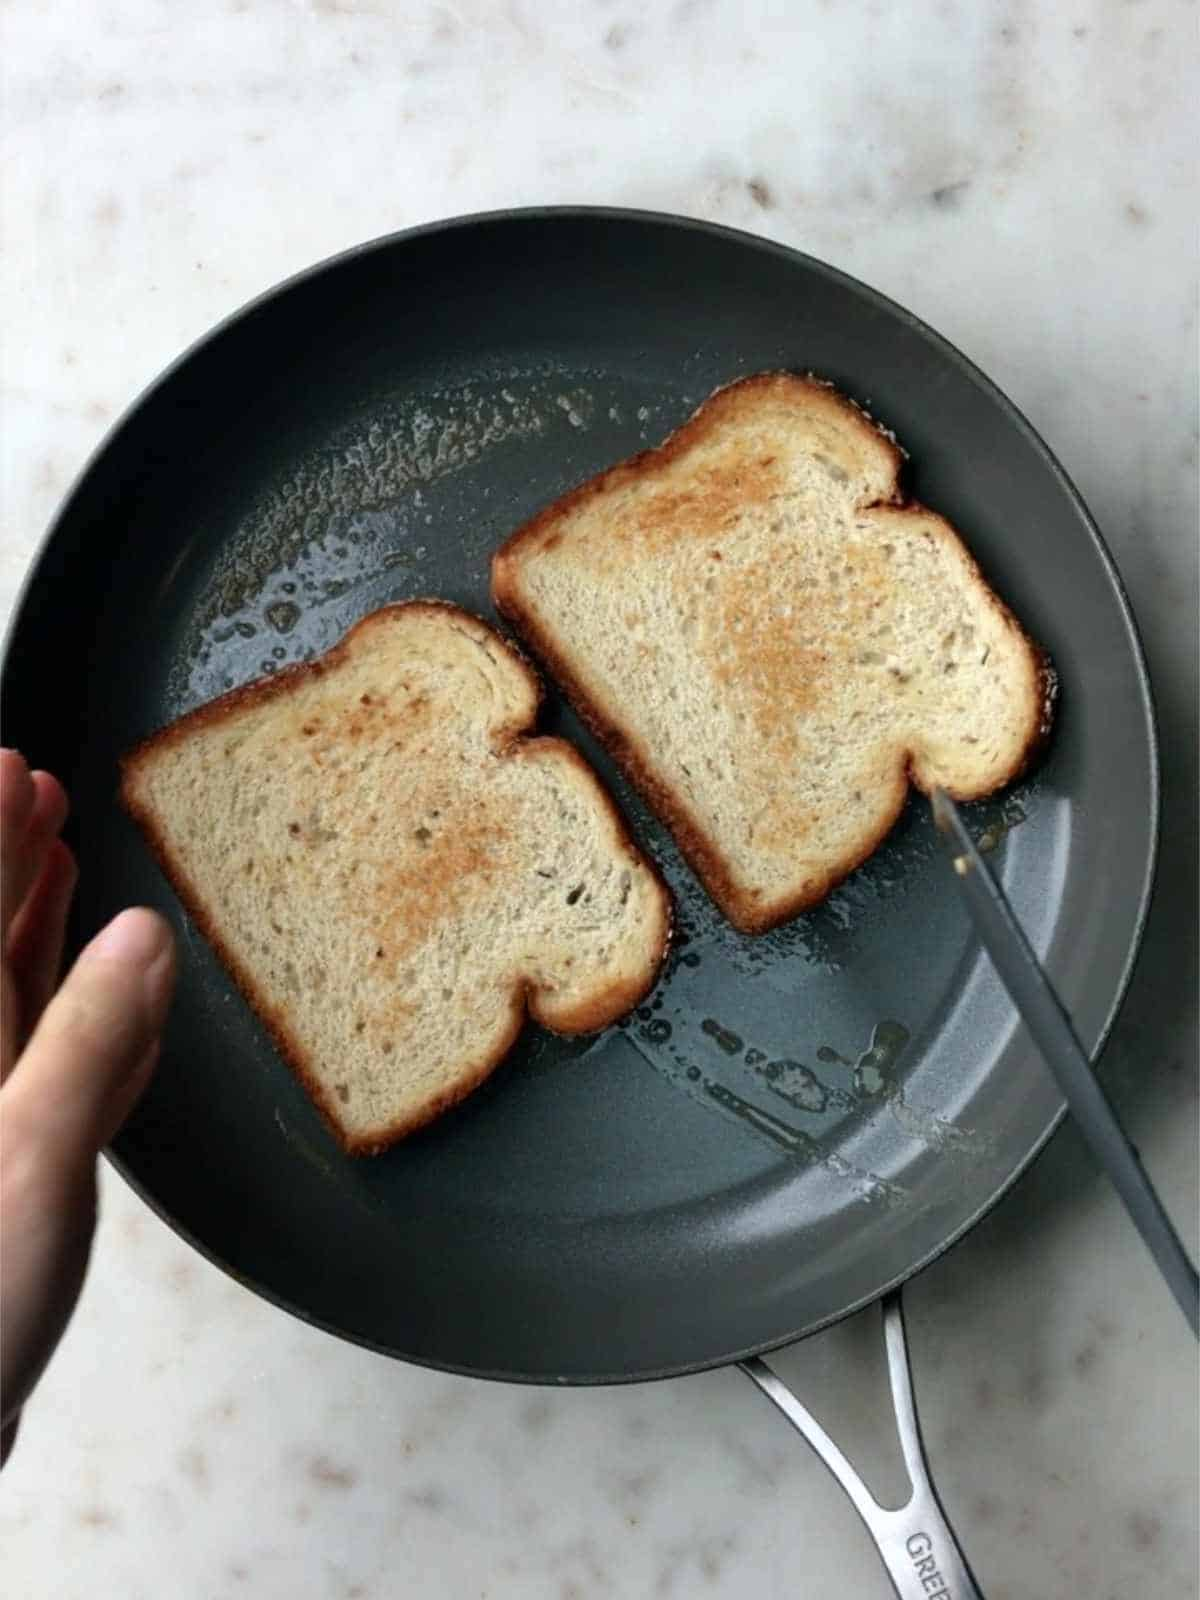 Toast in a pan.